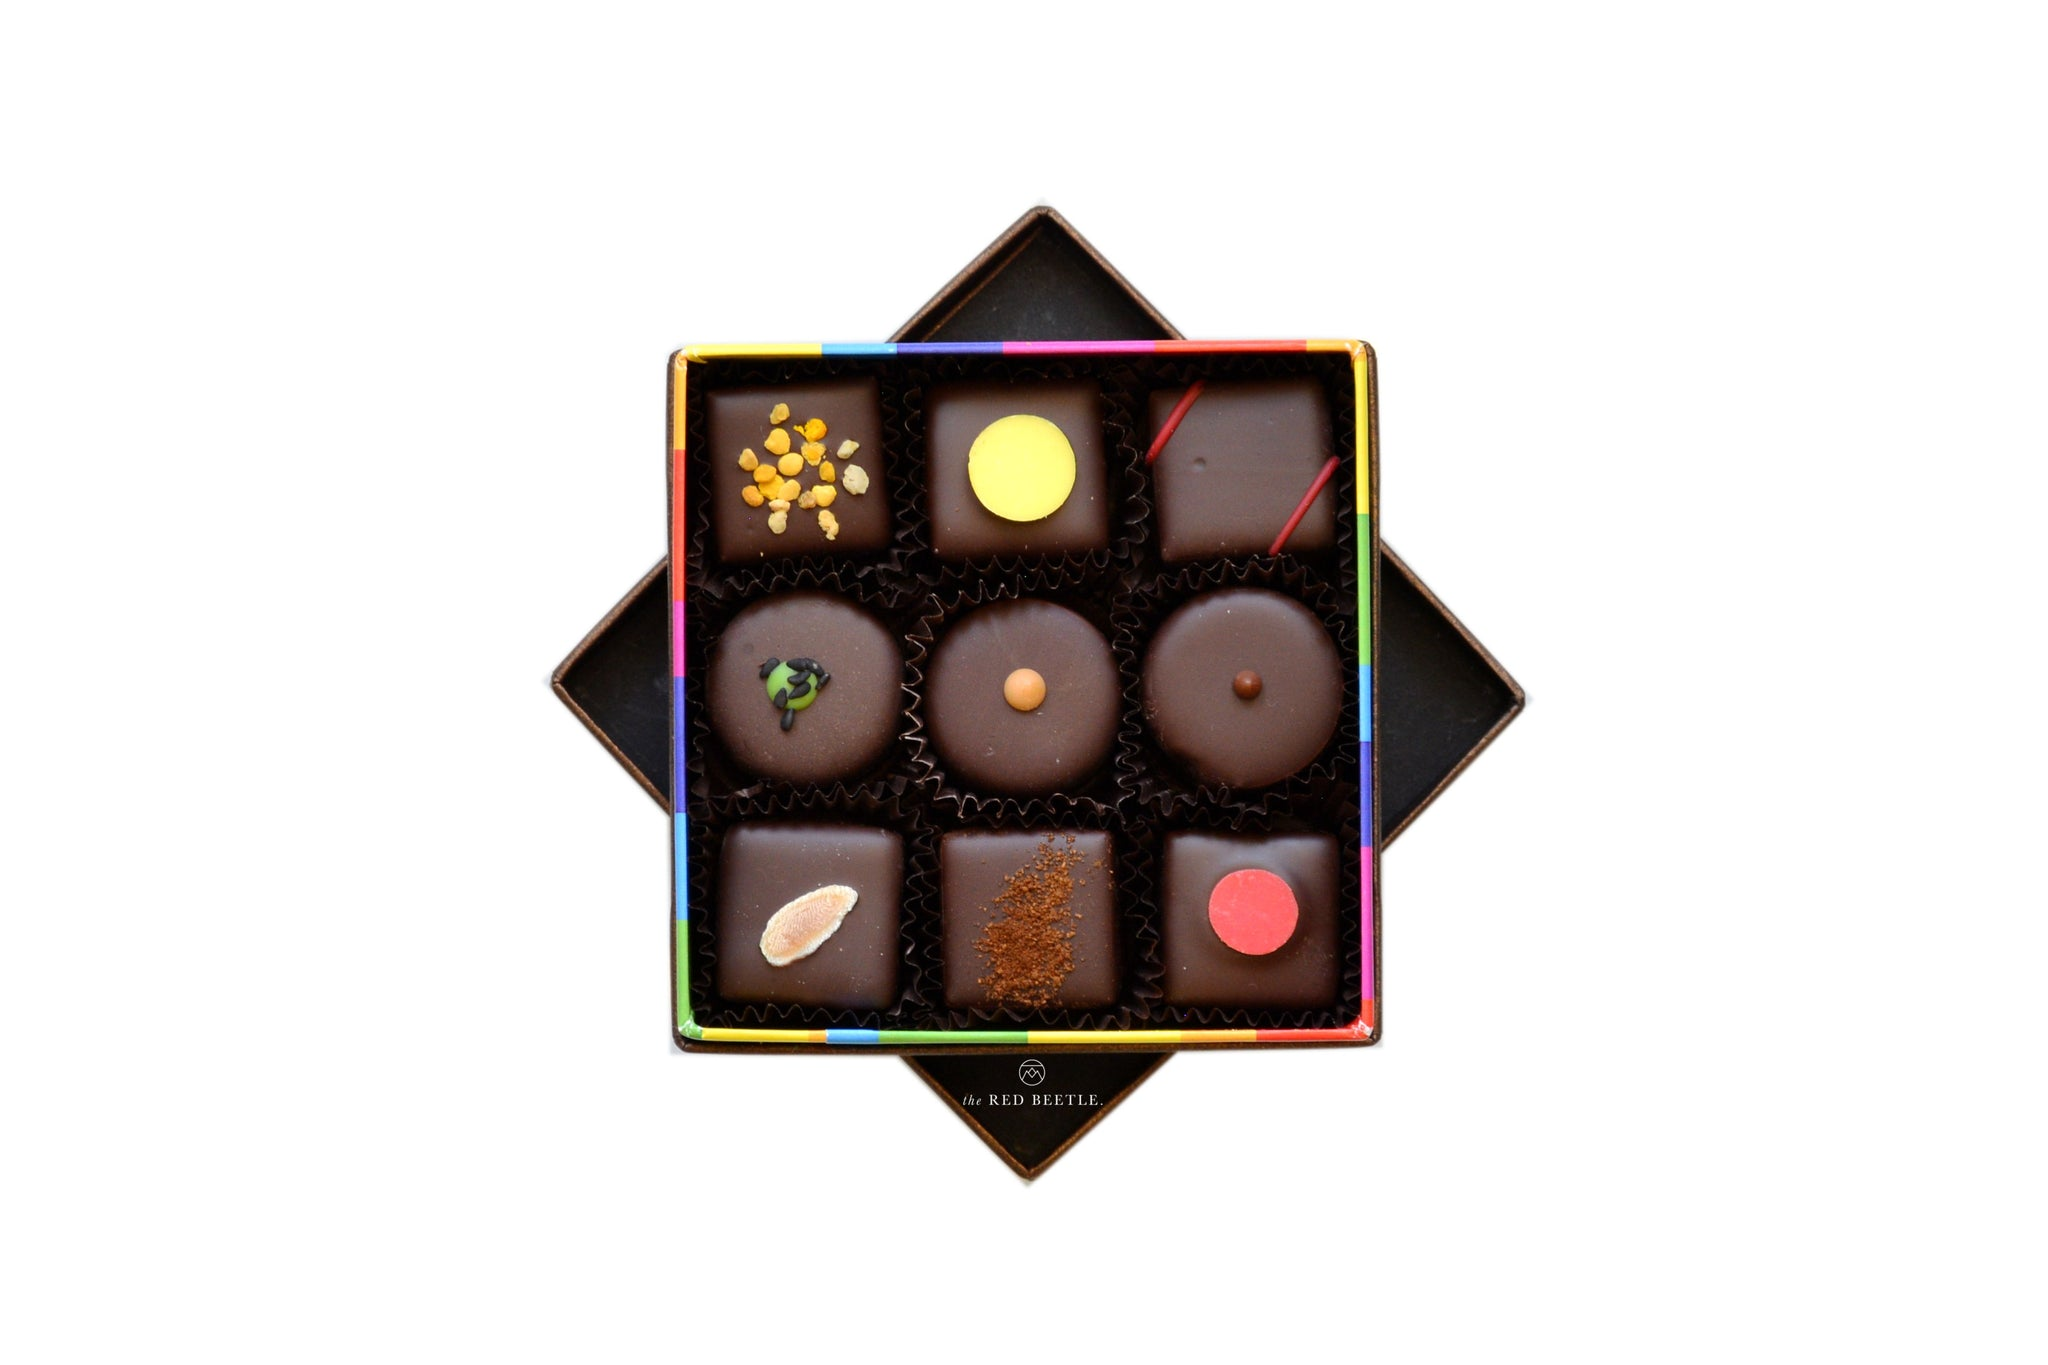 Enrico Rizzi Box of 9 Chocolate Pralines Handmade in Milan